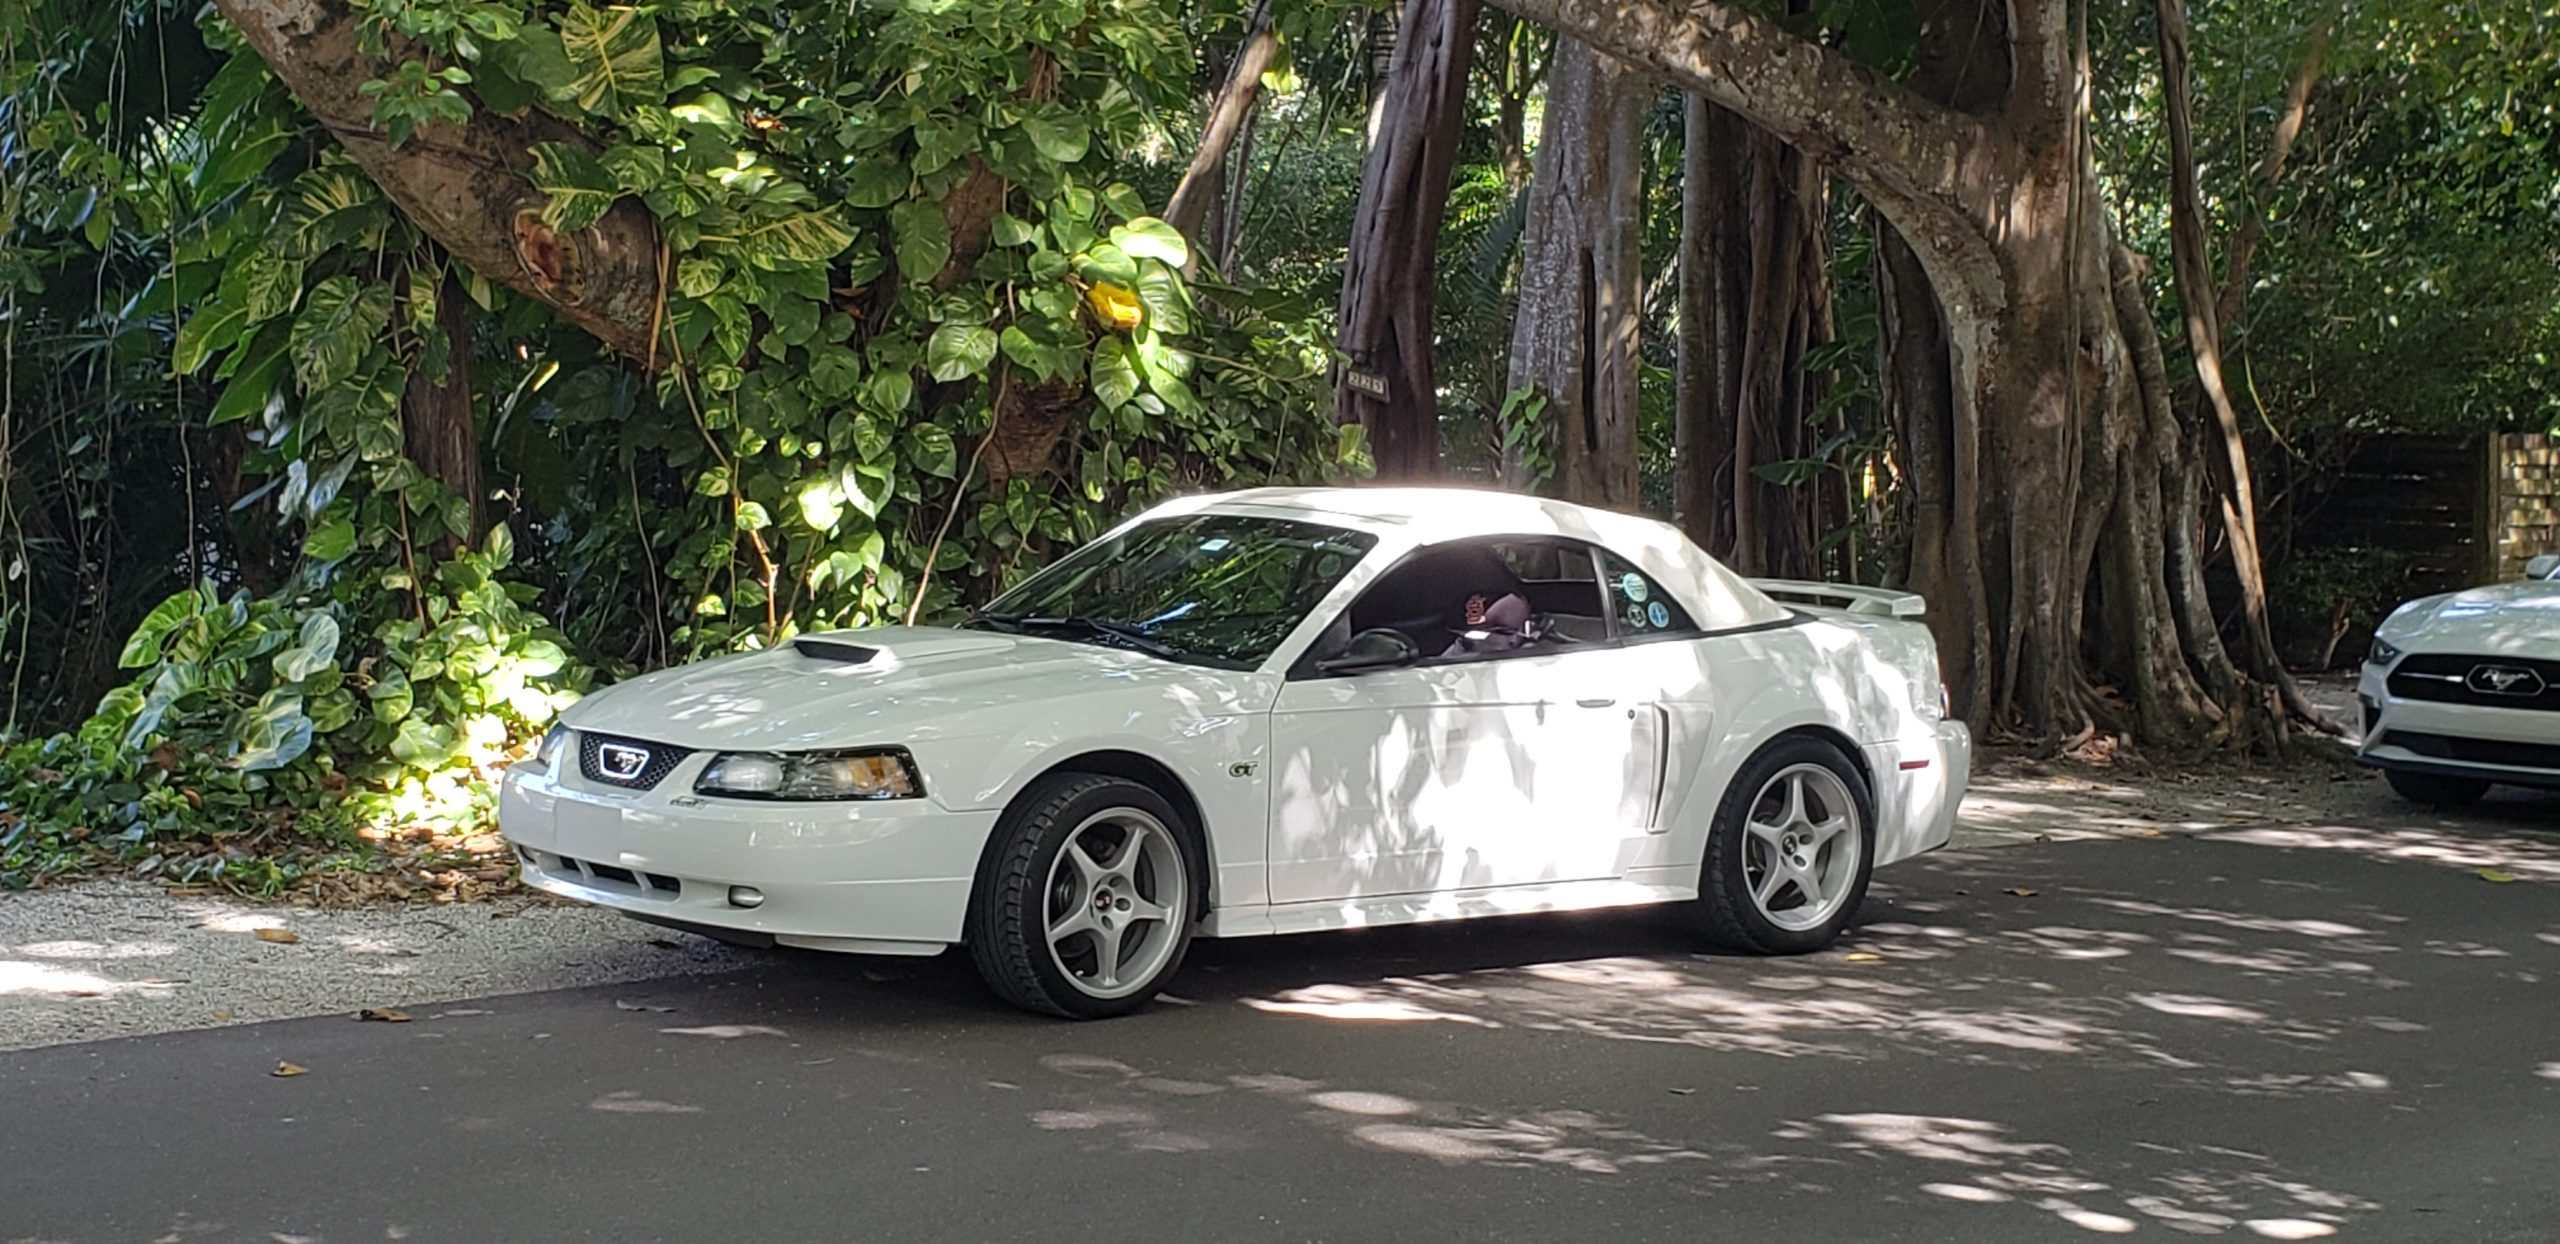 Mark & Linda Wilson's 2002 white Mustang Convertible